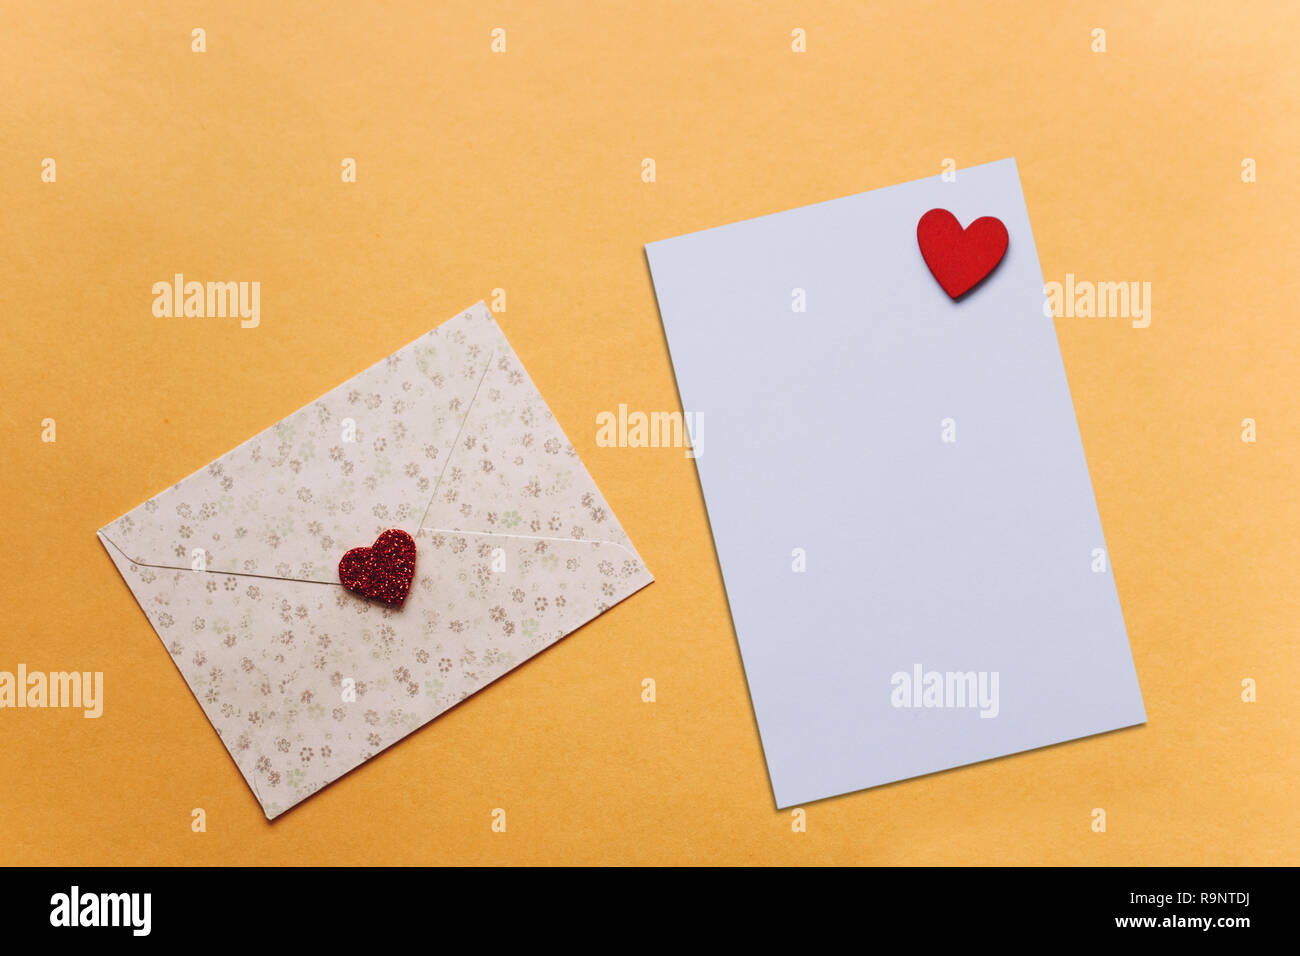 Blank sheet with red heart for text or write. Near an envelope with a heart to send. Concept for Valentine's Day or Women's Day or Mother's Day. - Stock Image